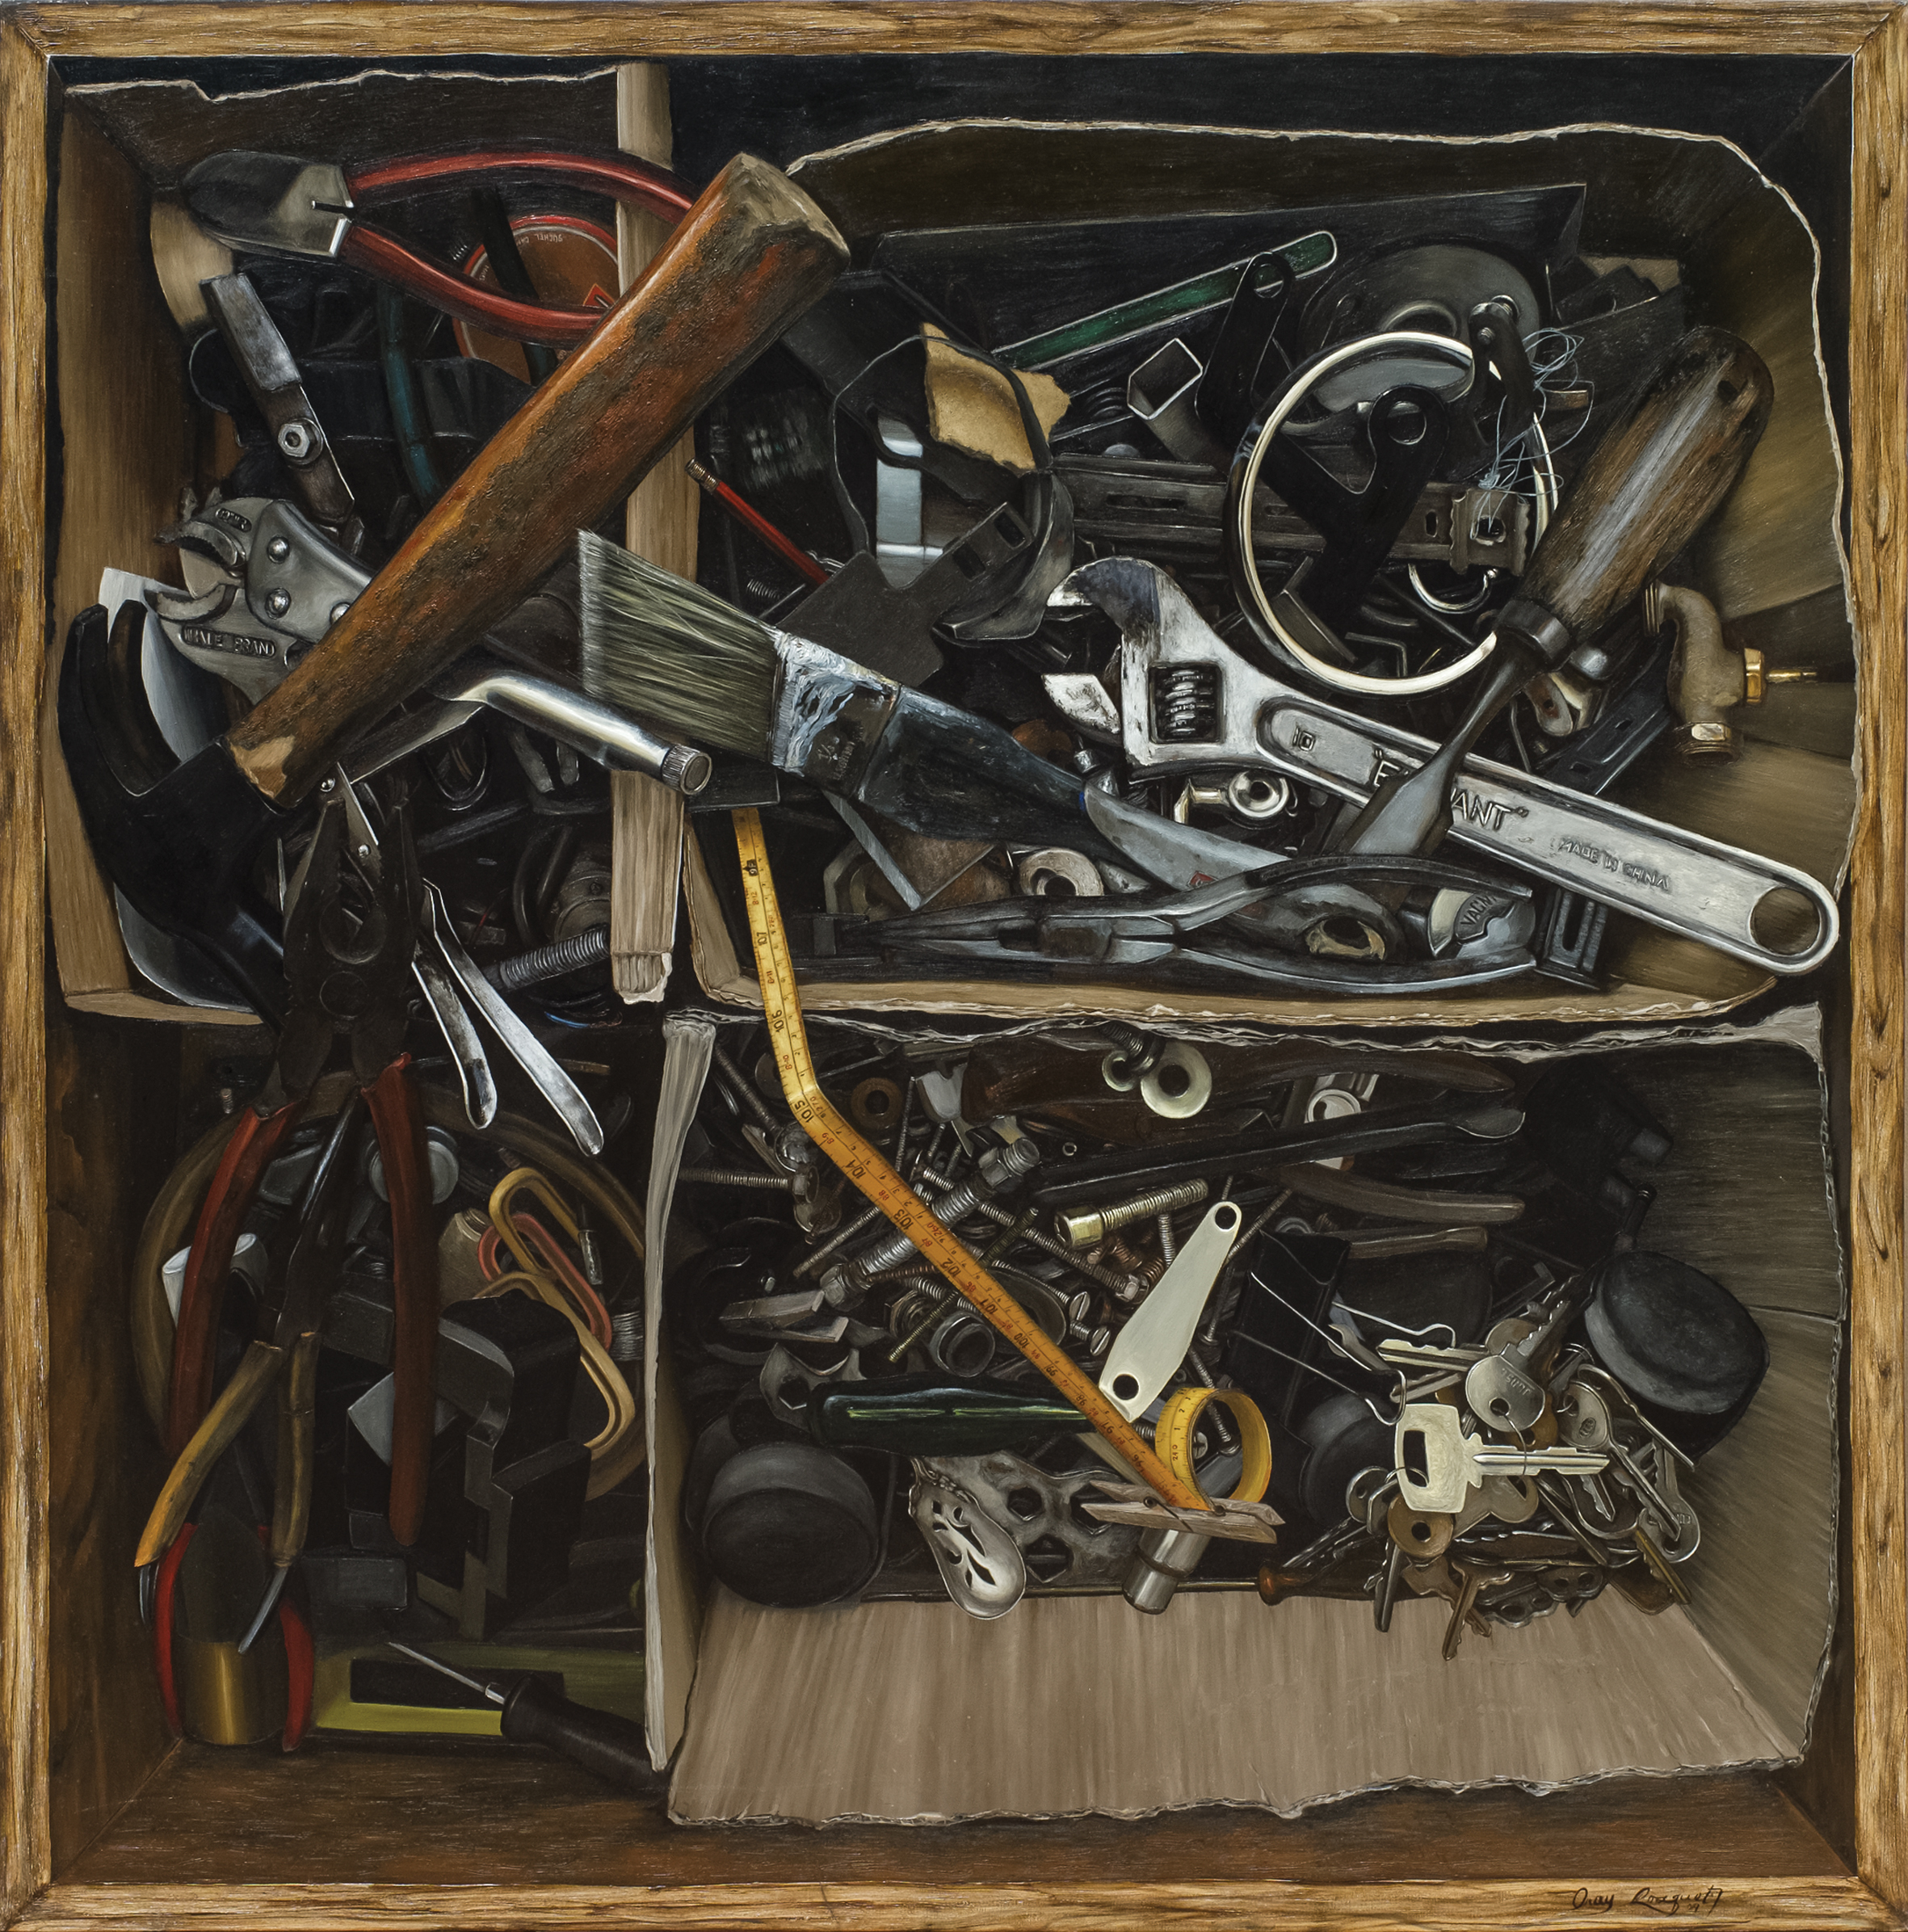 Onay Rosquet - Assembly of Tools